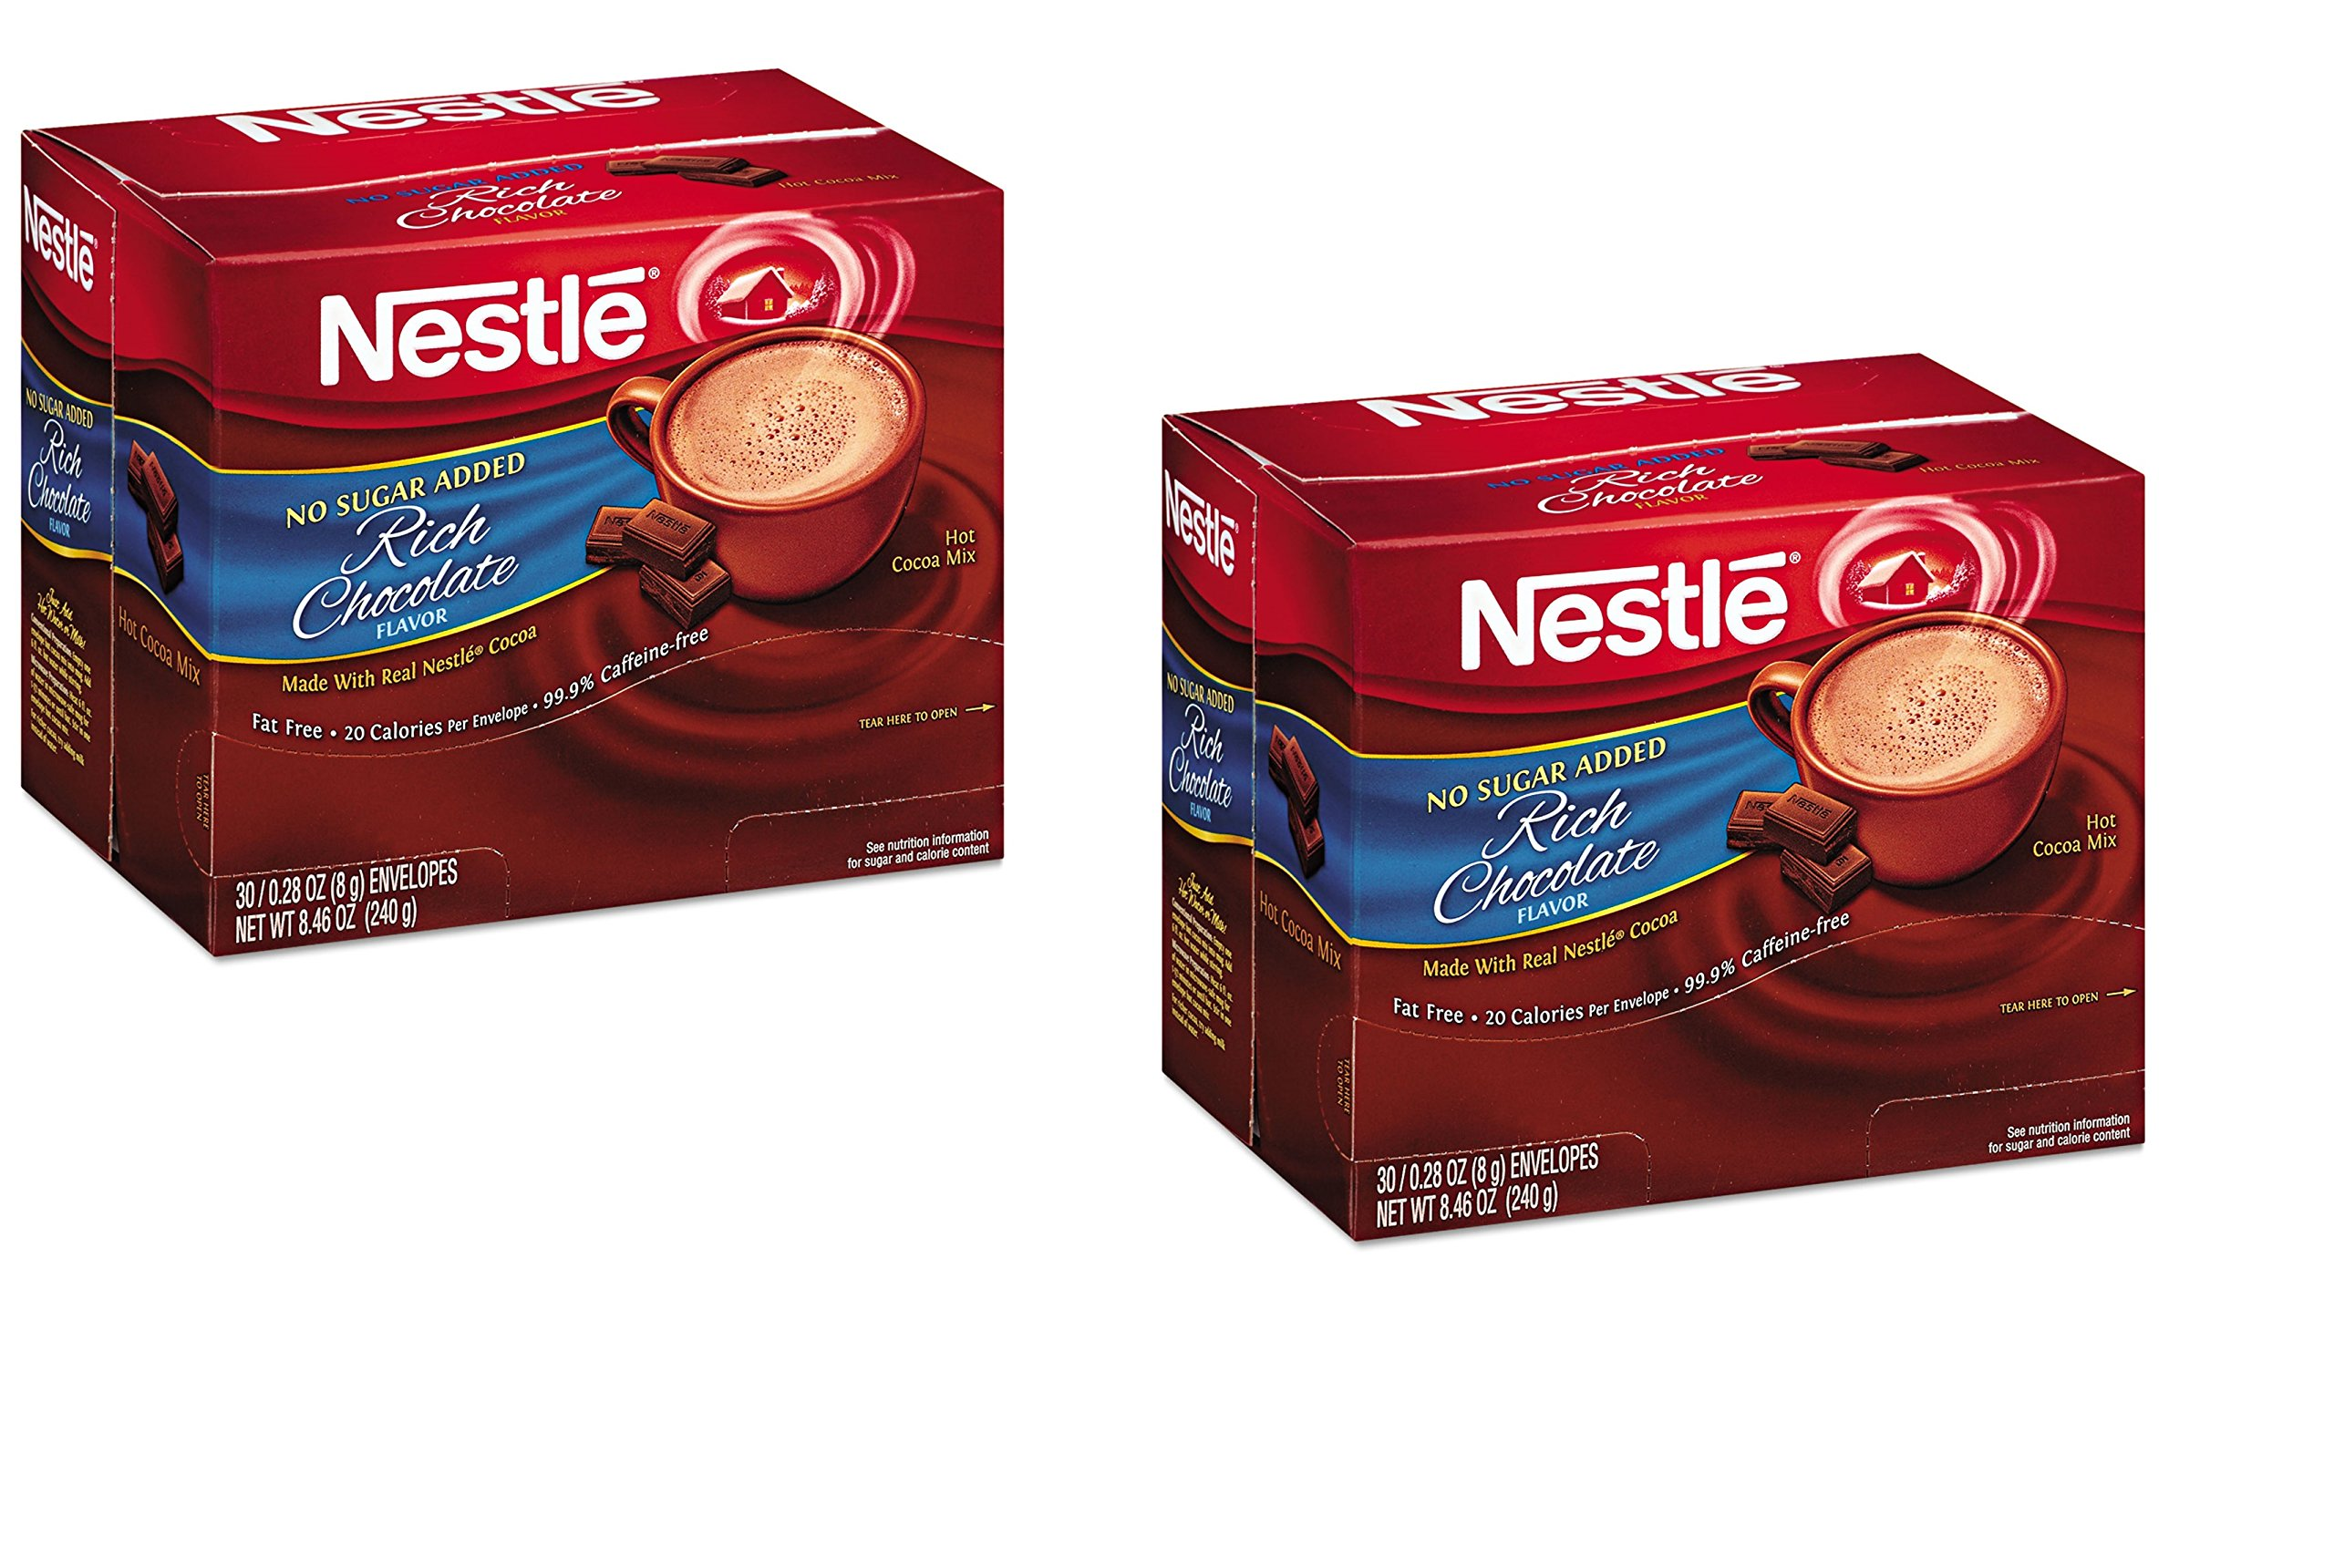 Nestle Cocoa Mix No Sugar Added 60 Count .28 Oz Packets (2-30 ct boxes) (Original Version)